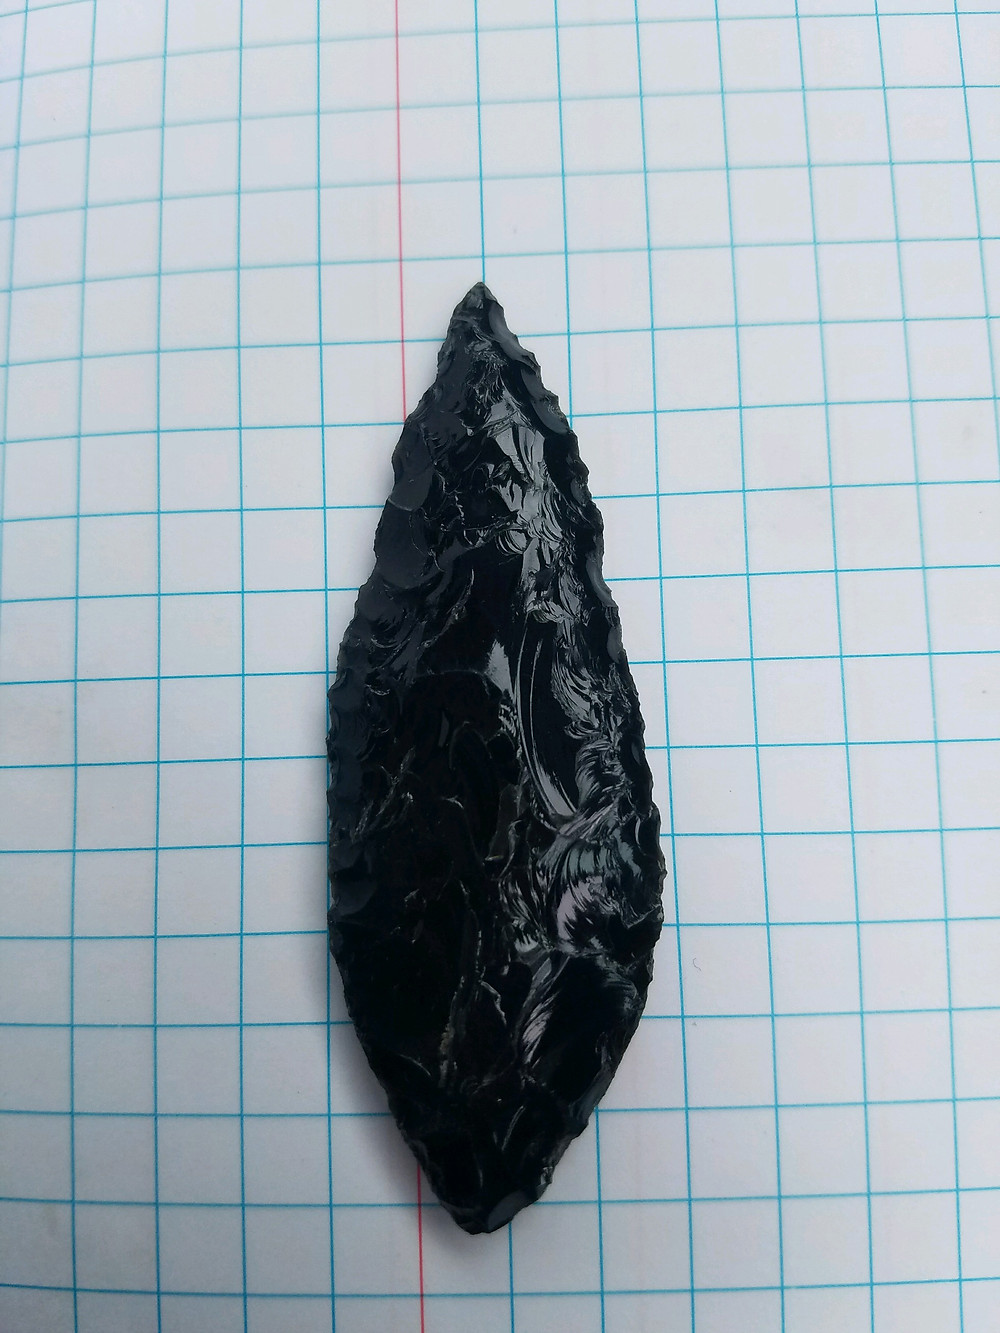 Obsidian Arrow Head Found in Napa California